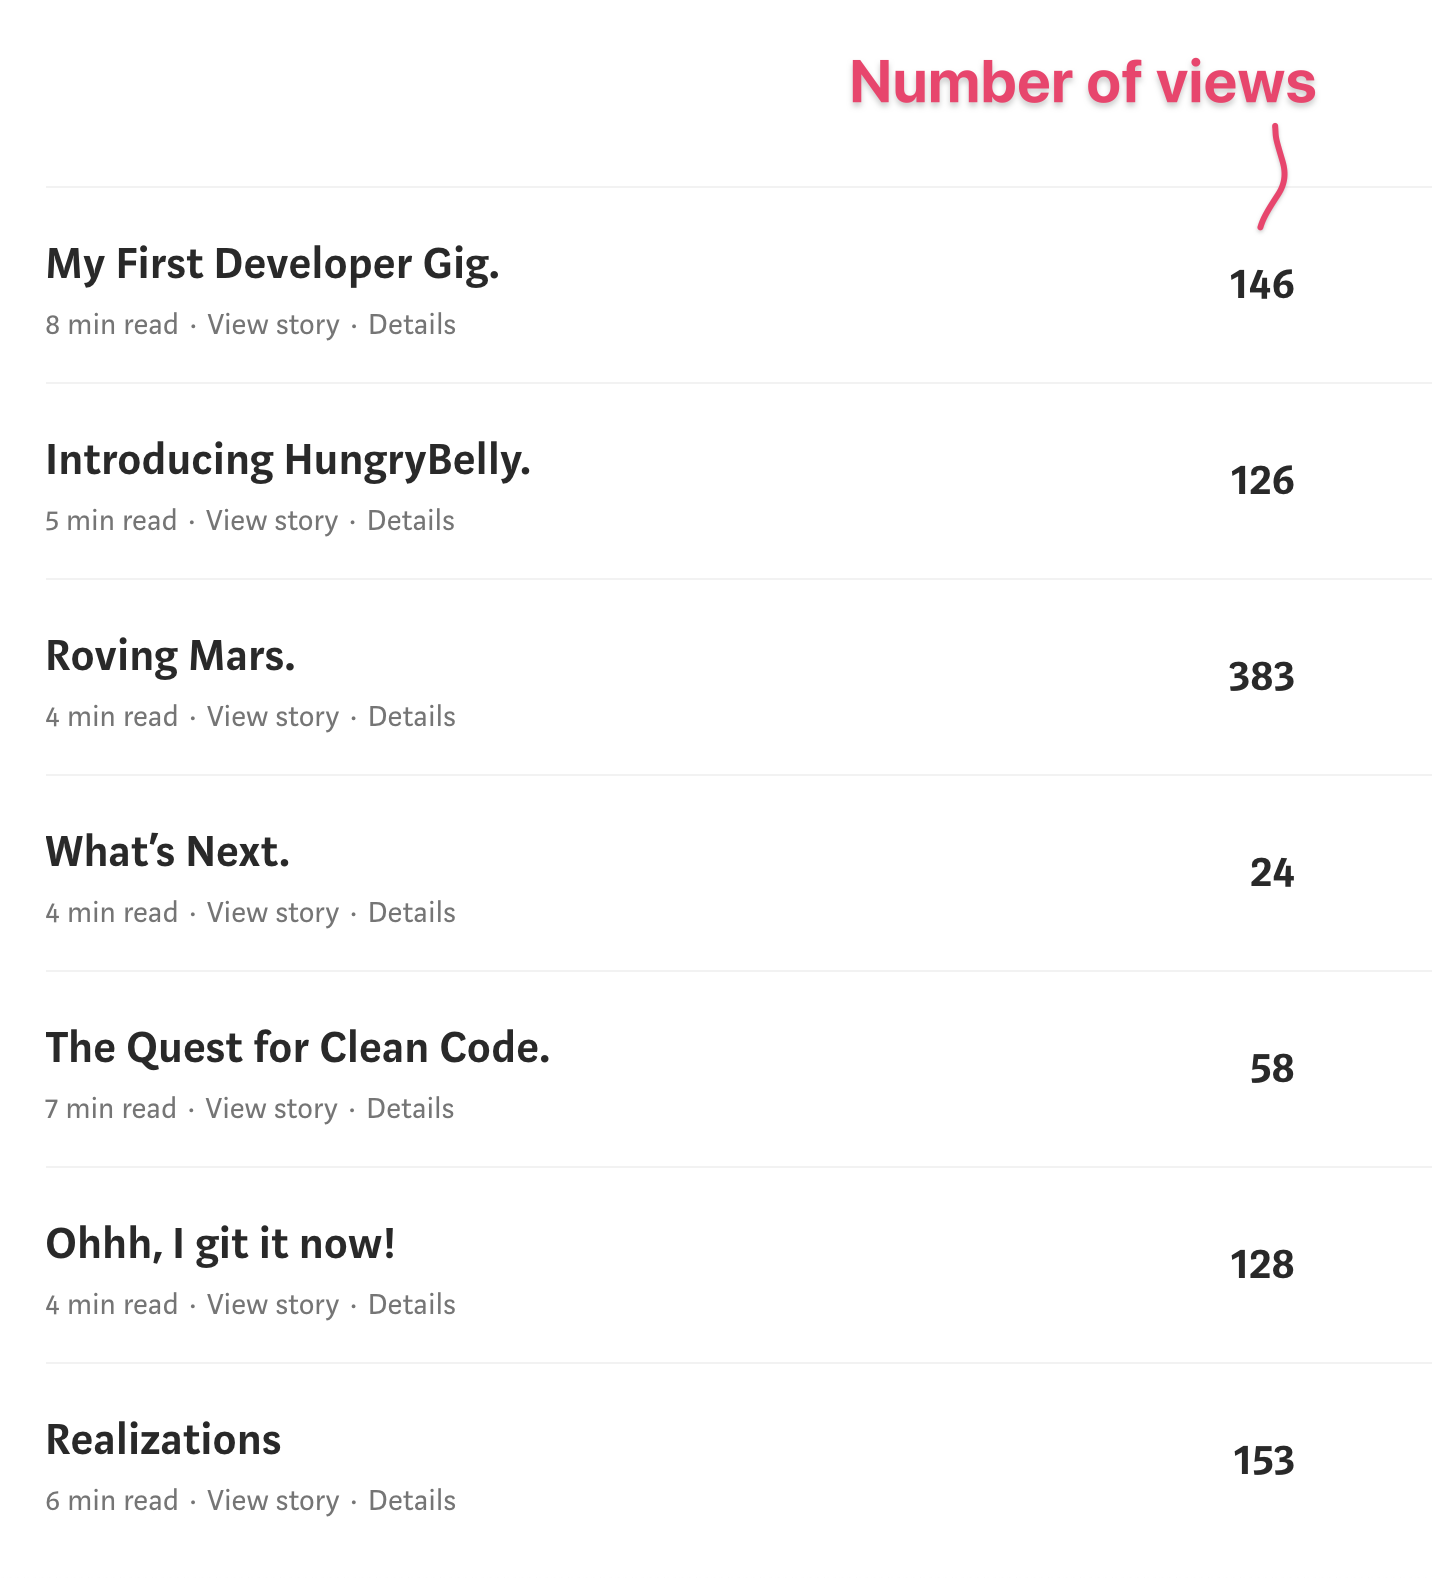 A table showing blog posts with 20-150 views each